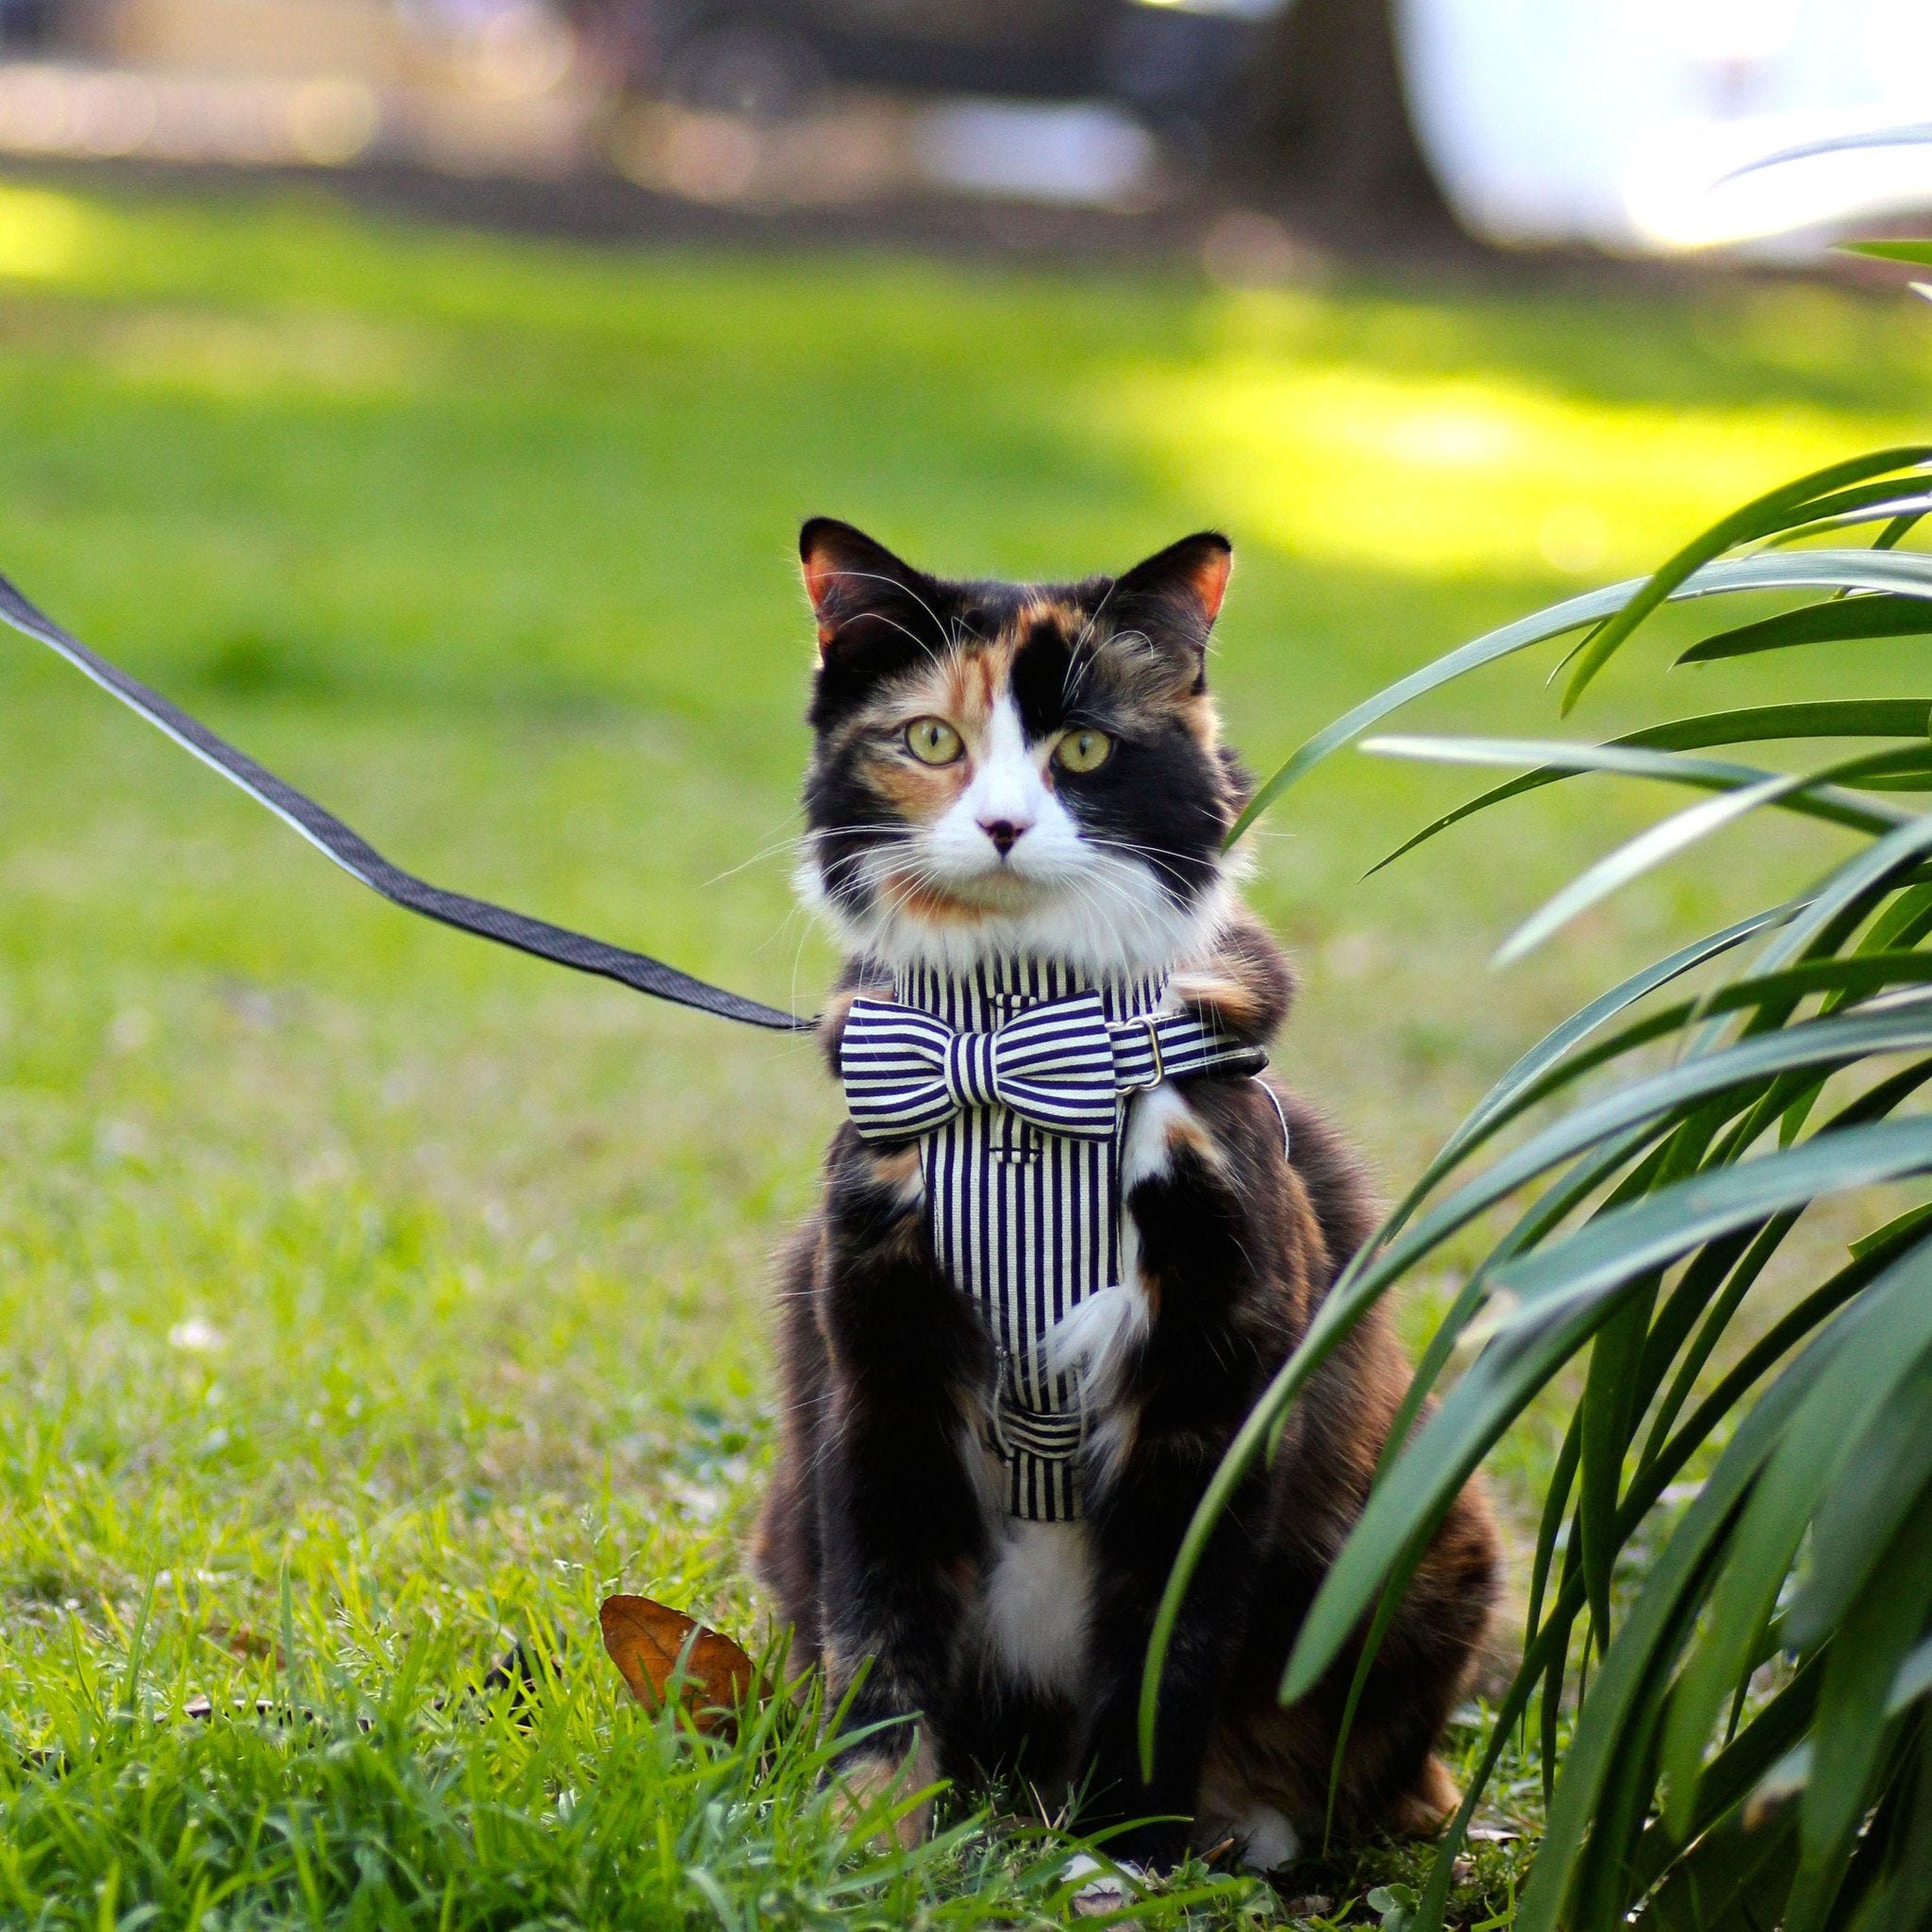 Cat Bow-tie Harness & Leash : Black & White Stripes - Dharf - 3